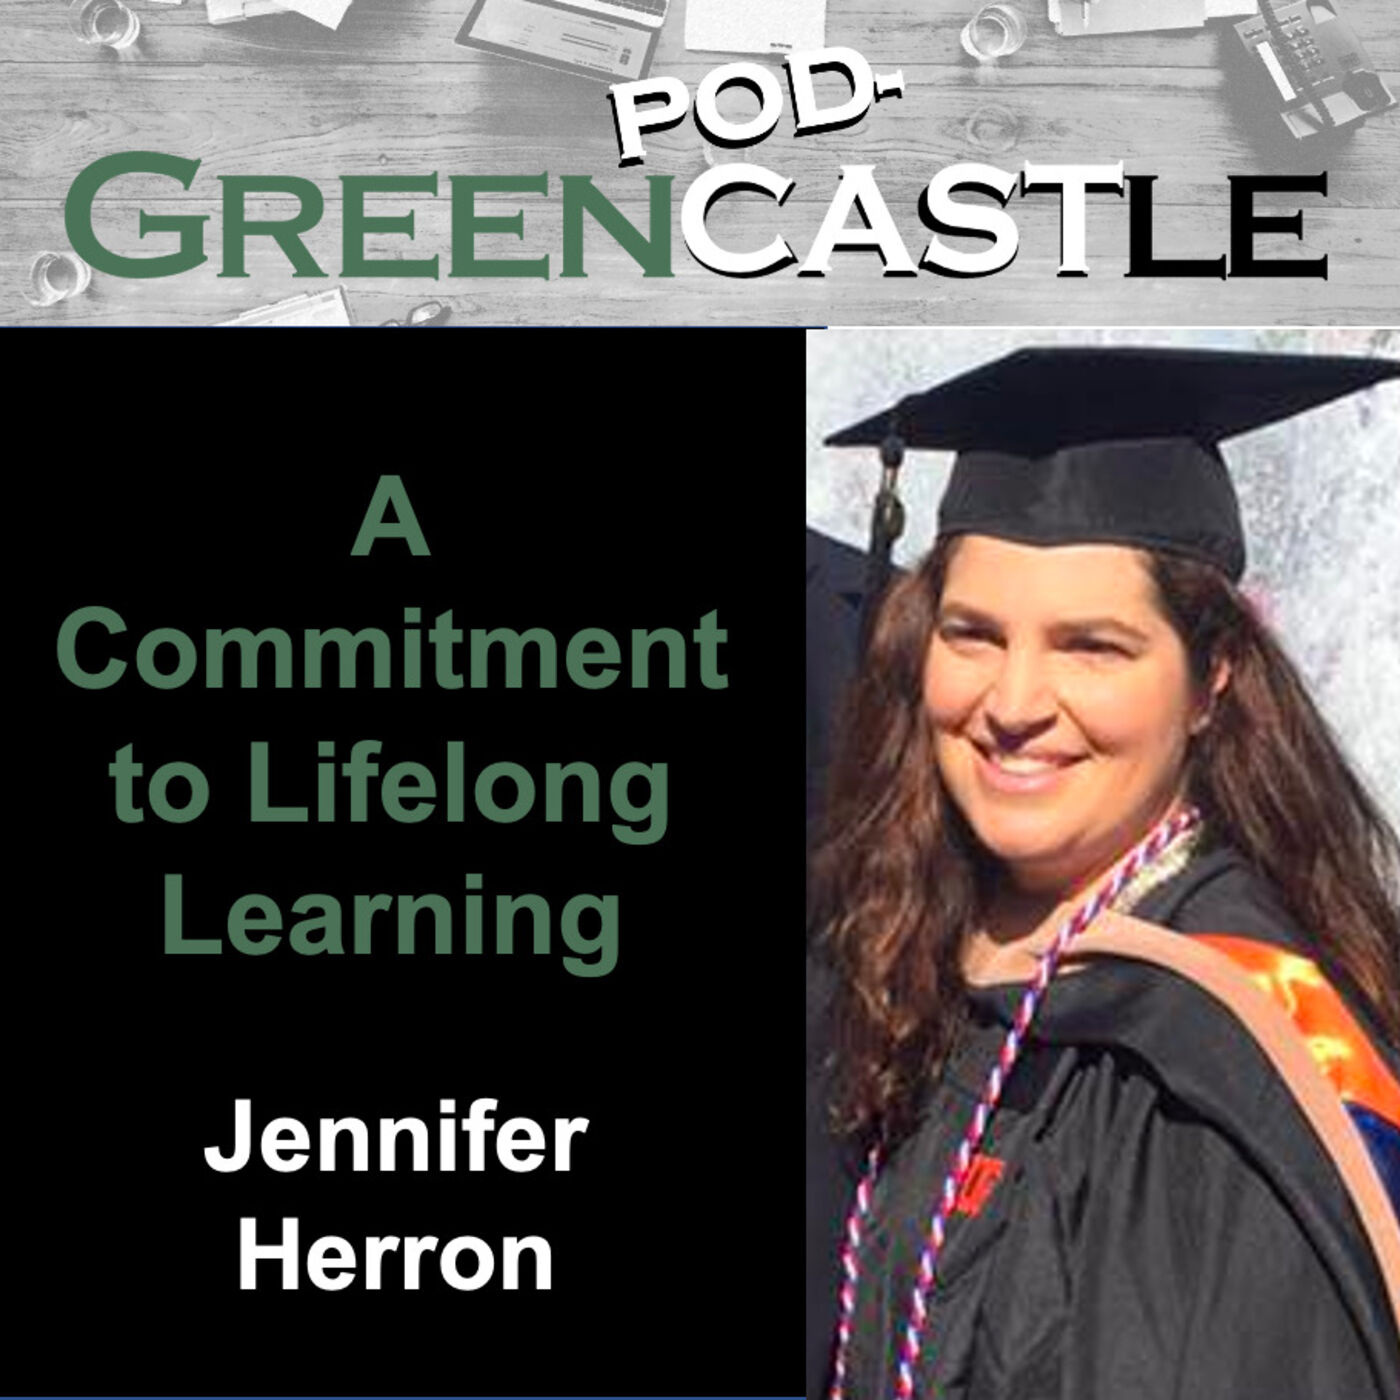 Greencastle Podcast Episode #23: A Commitment to Lifelong Learning with Jennifer Herron